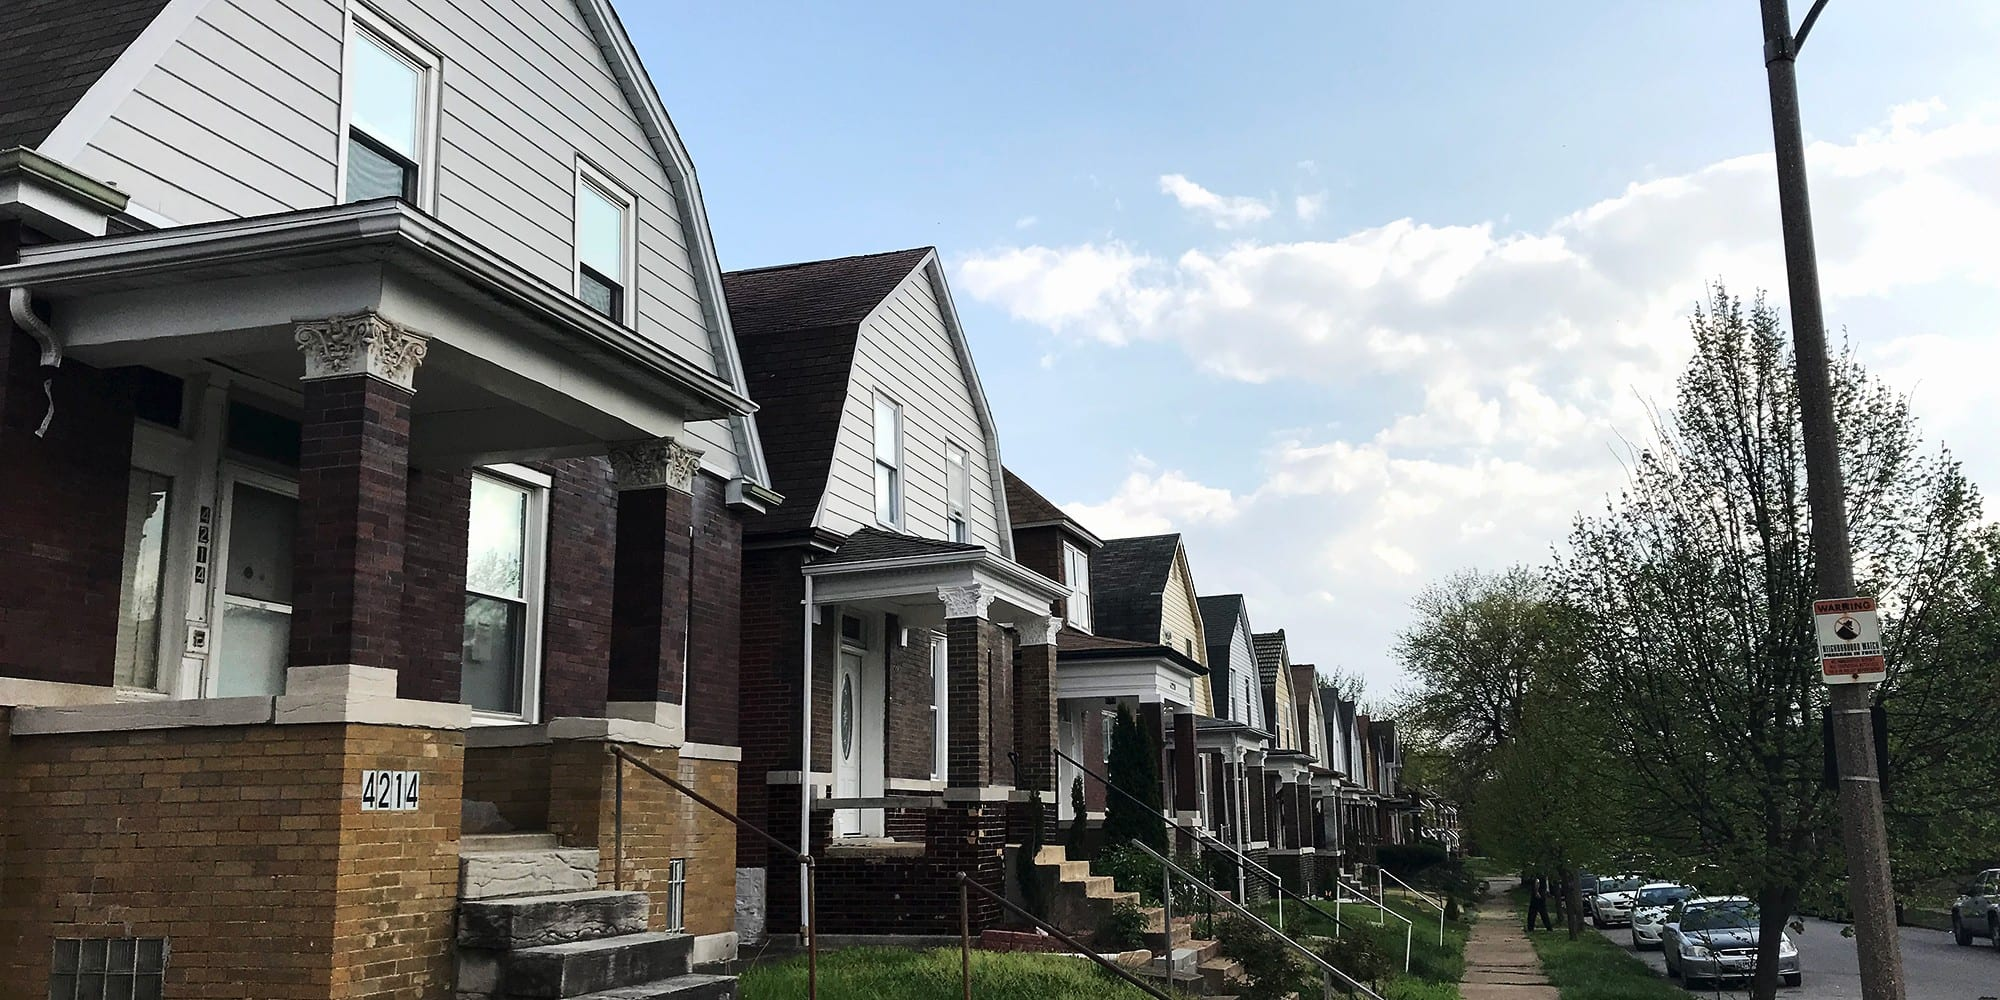 Homes on the 4200 block of Grace Avenue in Dutchtown West.